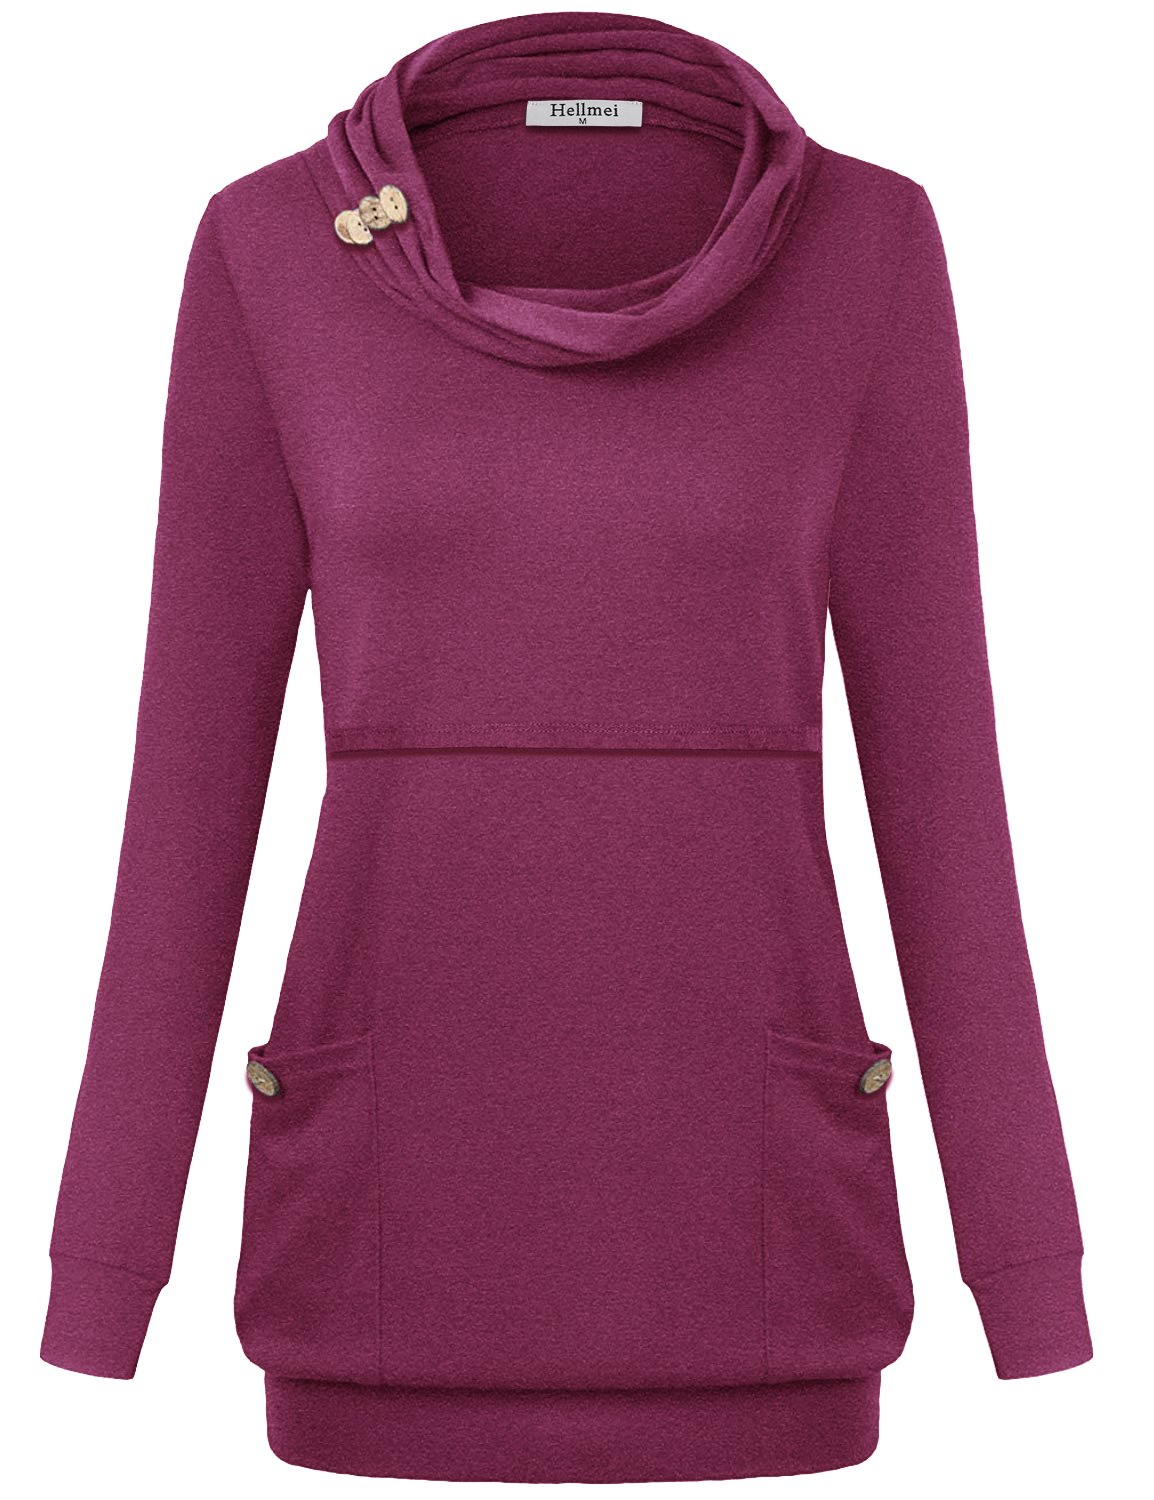 Hellmei Womens Nursing Tops, Ladies Petite Trendy Draped Prime Misses Shirt Long Sleeve Jersey Cotton Trapeze Cowl Neck Tunic A-Line Pleat Stretchy Business Casual Clothing Rose Red M by Hellmei (Image #2)